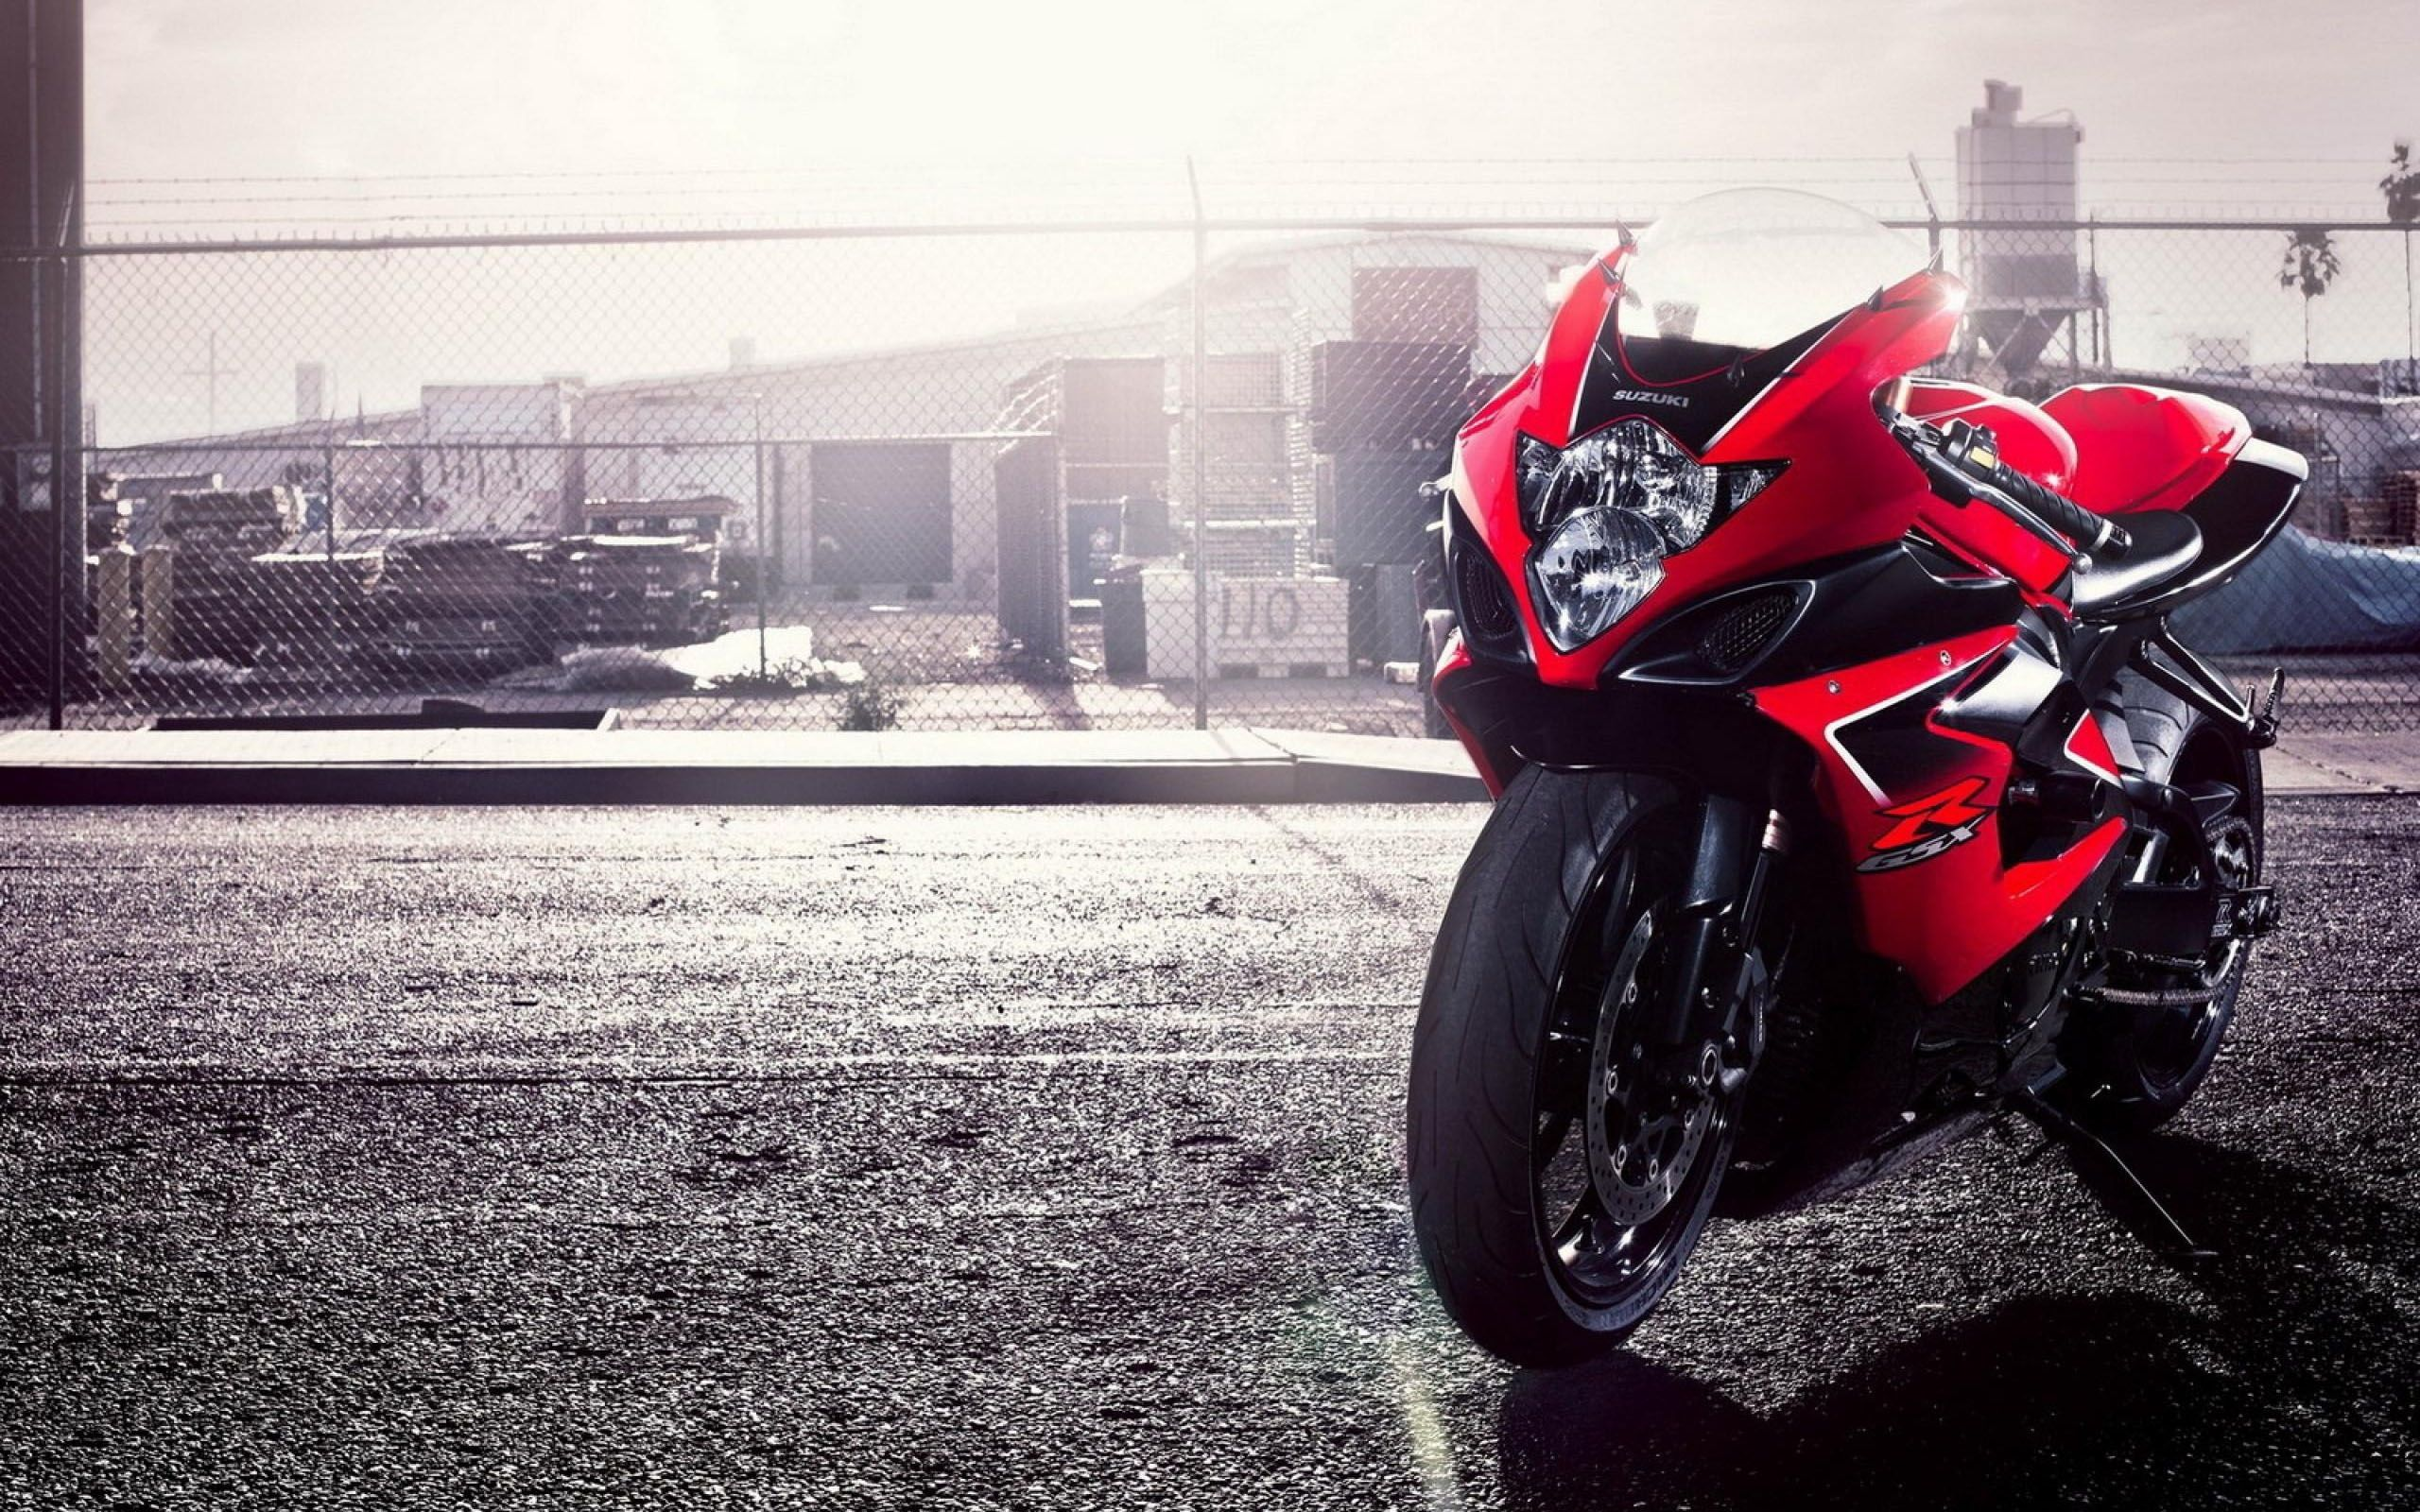 Bikes hd wallpapers free download latest bikes hd - Best wallpapers of cars and bikes ...